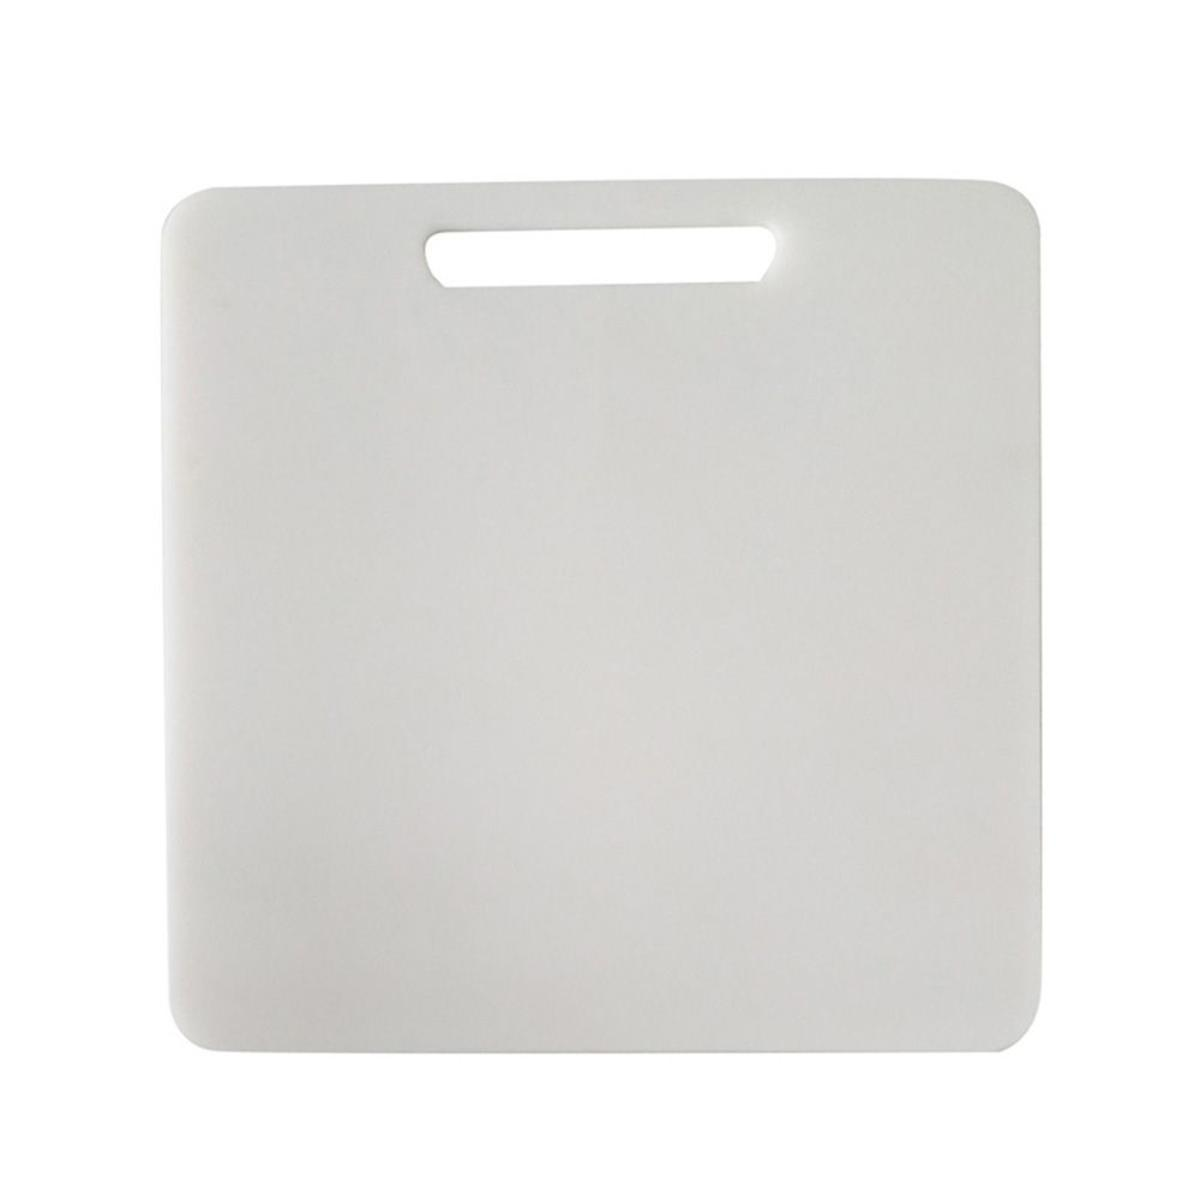 Camp Zero Divider/Cutting Board for 110L Cooler